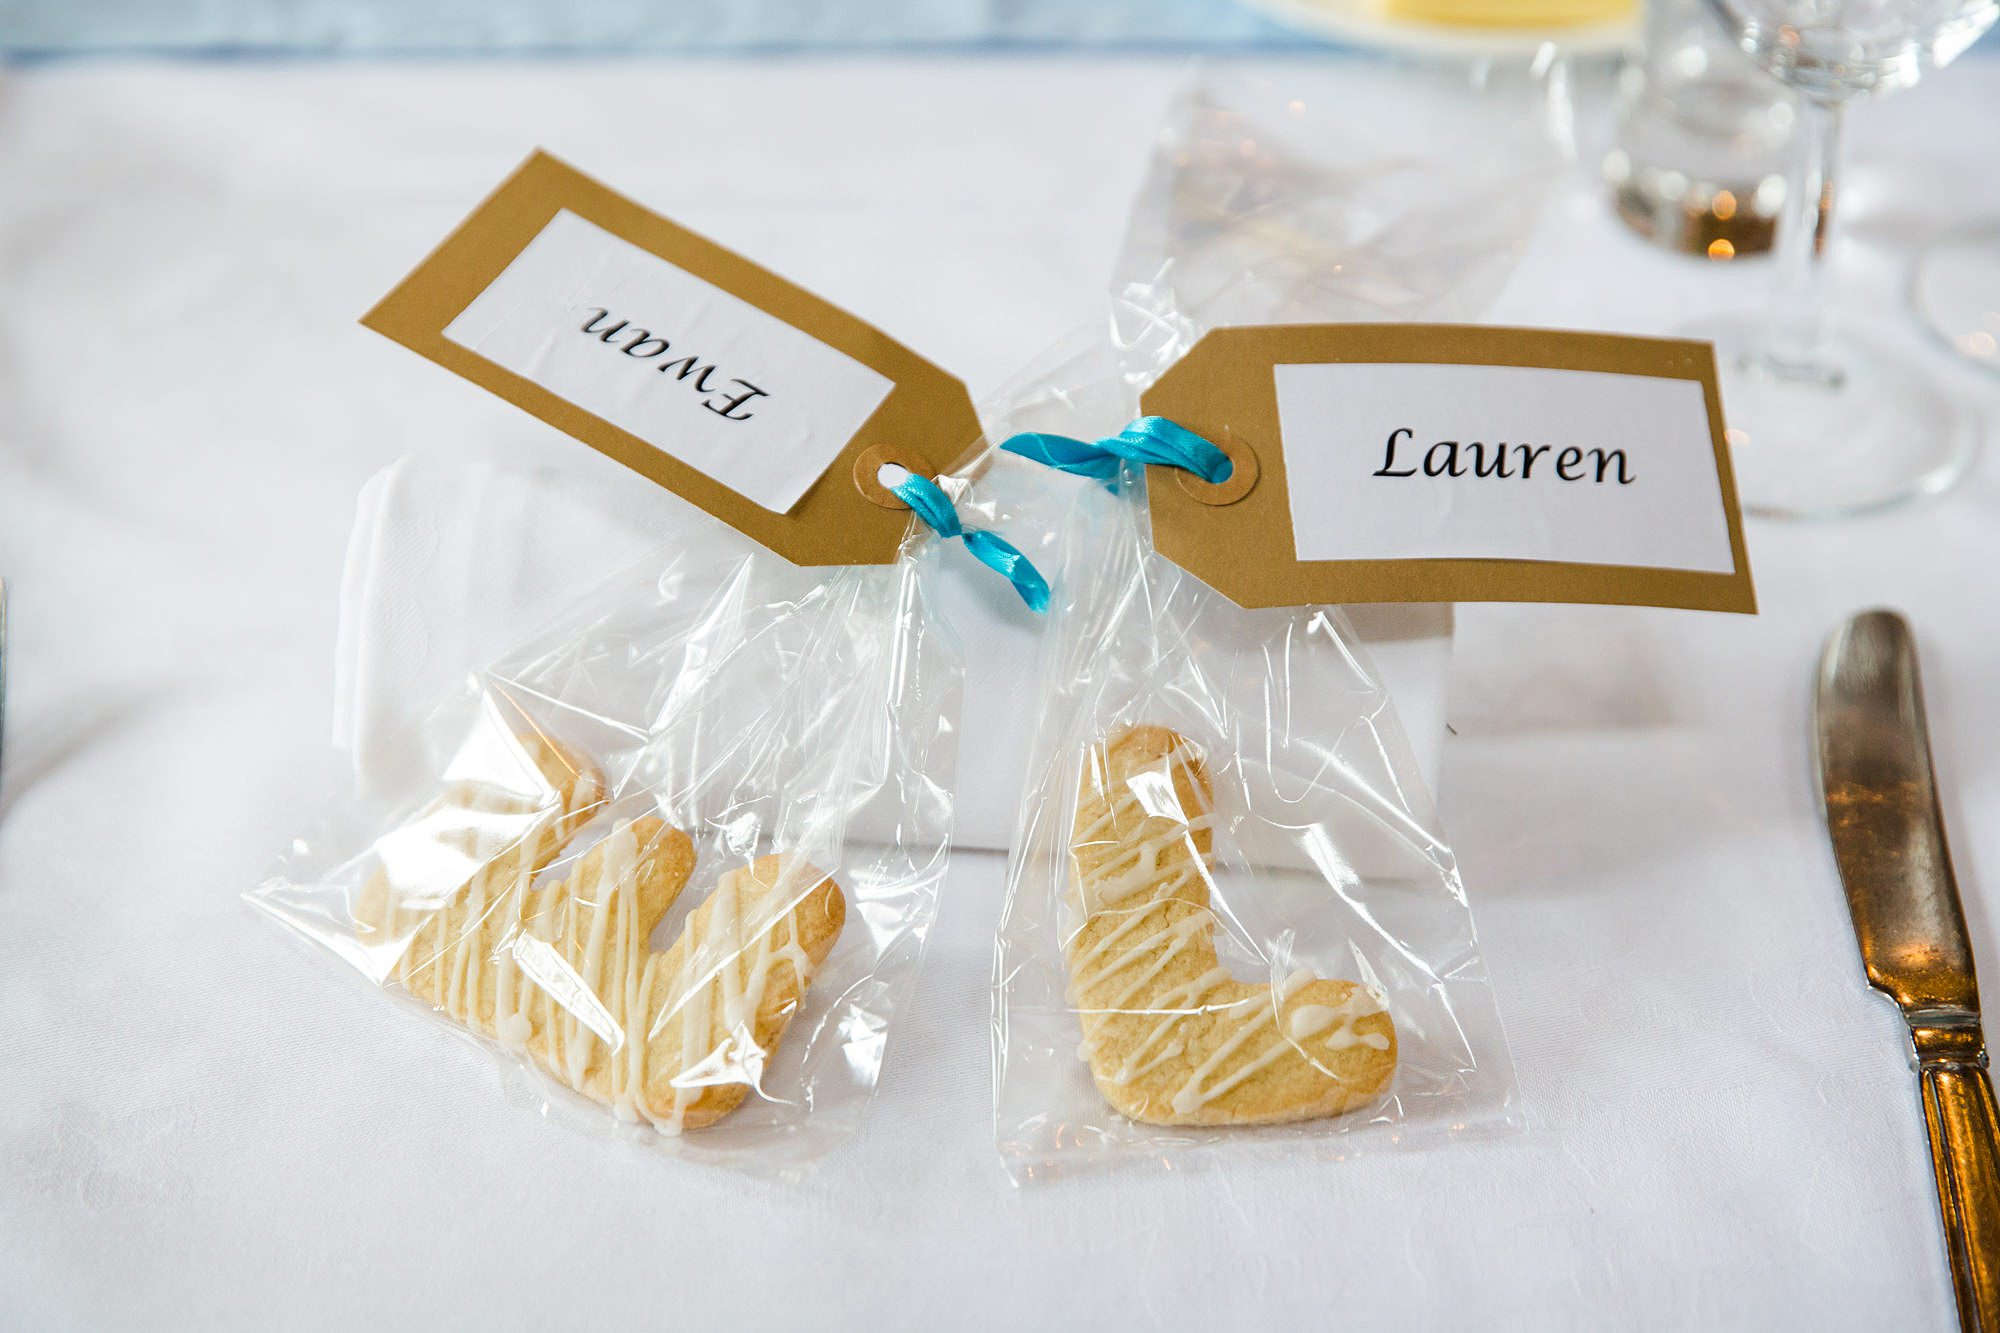 Fun DIY wedding favours - handmade biscuits at norwood farm